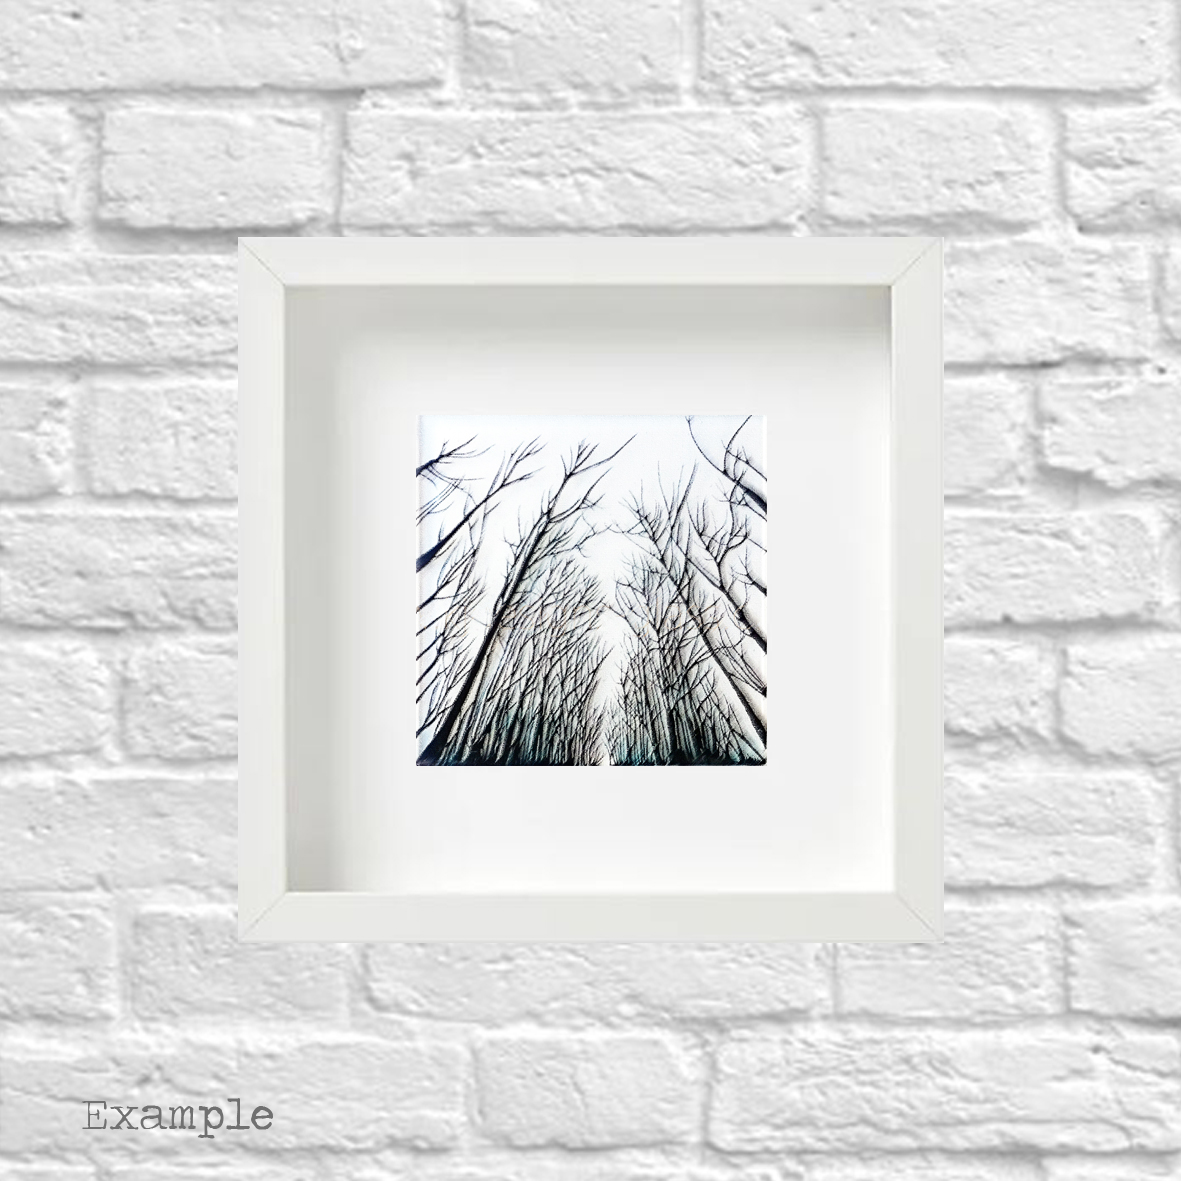 PS-black-forest-small-white-frame